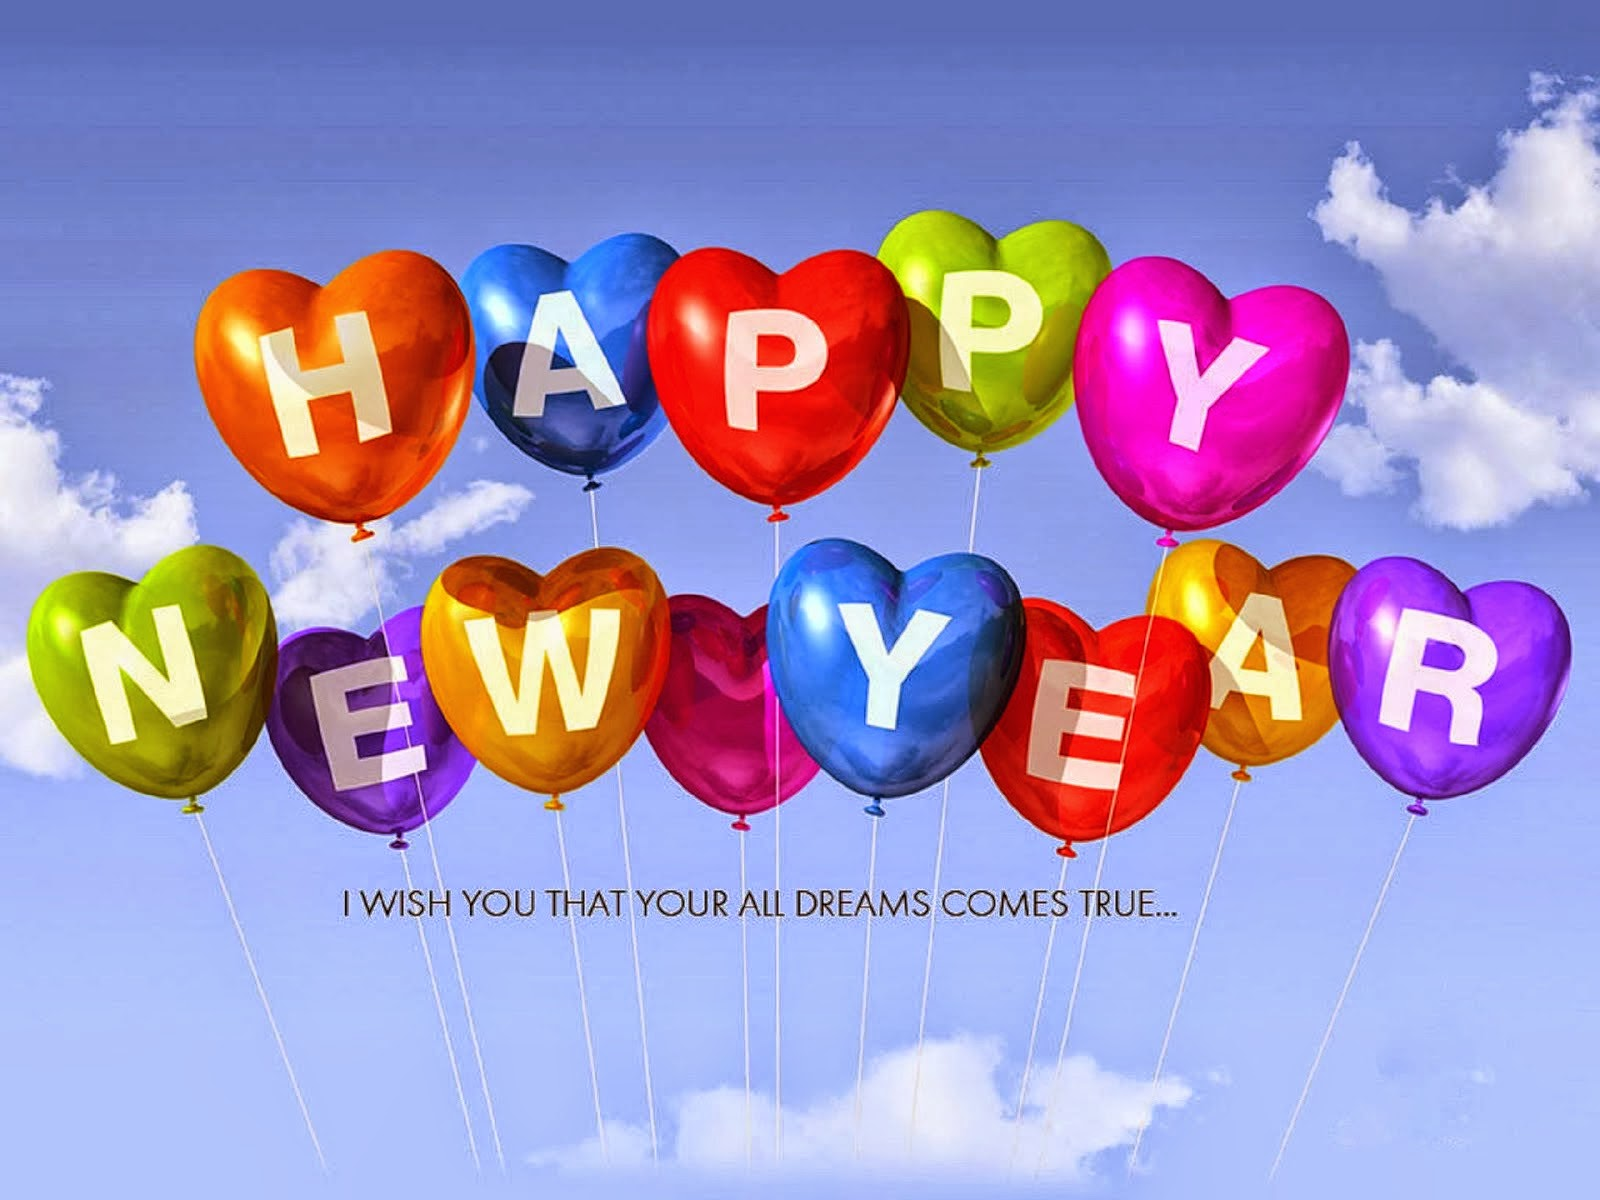 Wallpaper download new year - Happy New Year 2016 Hd Images Wallpapers Free Download